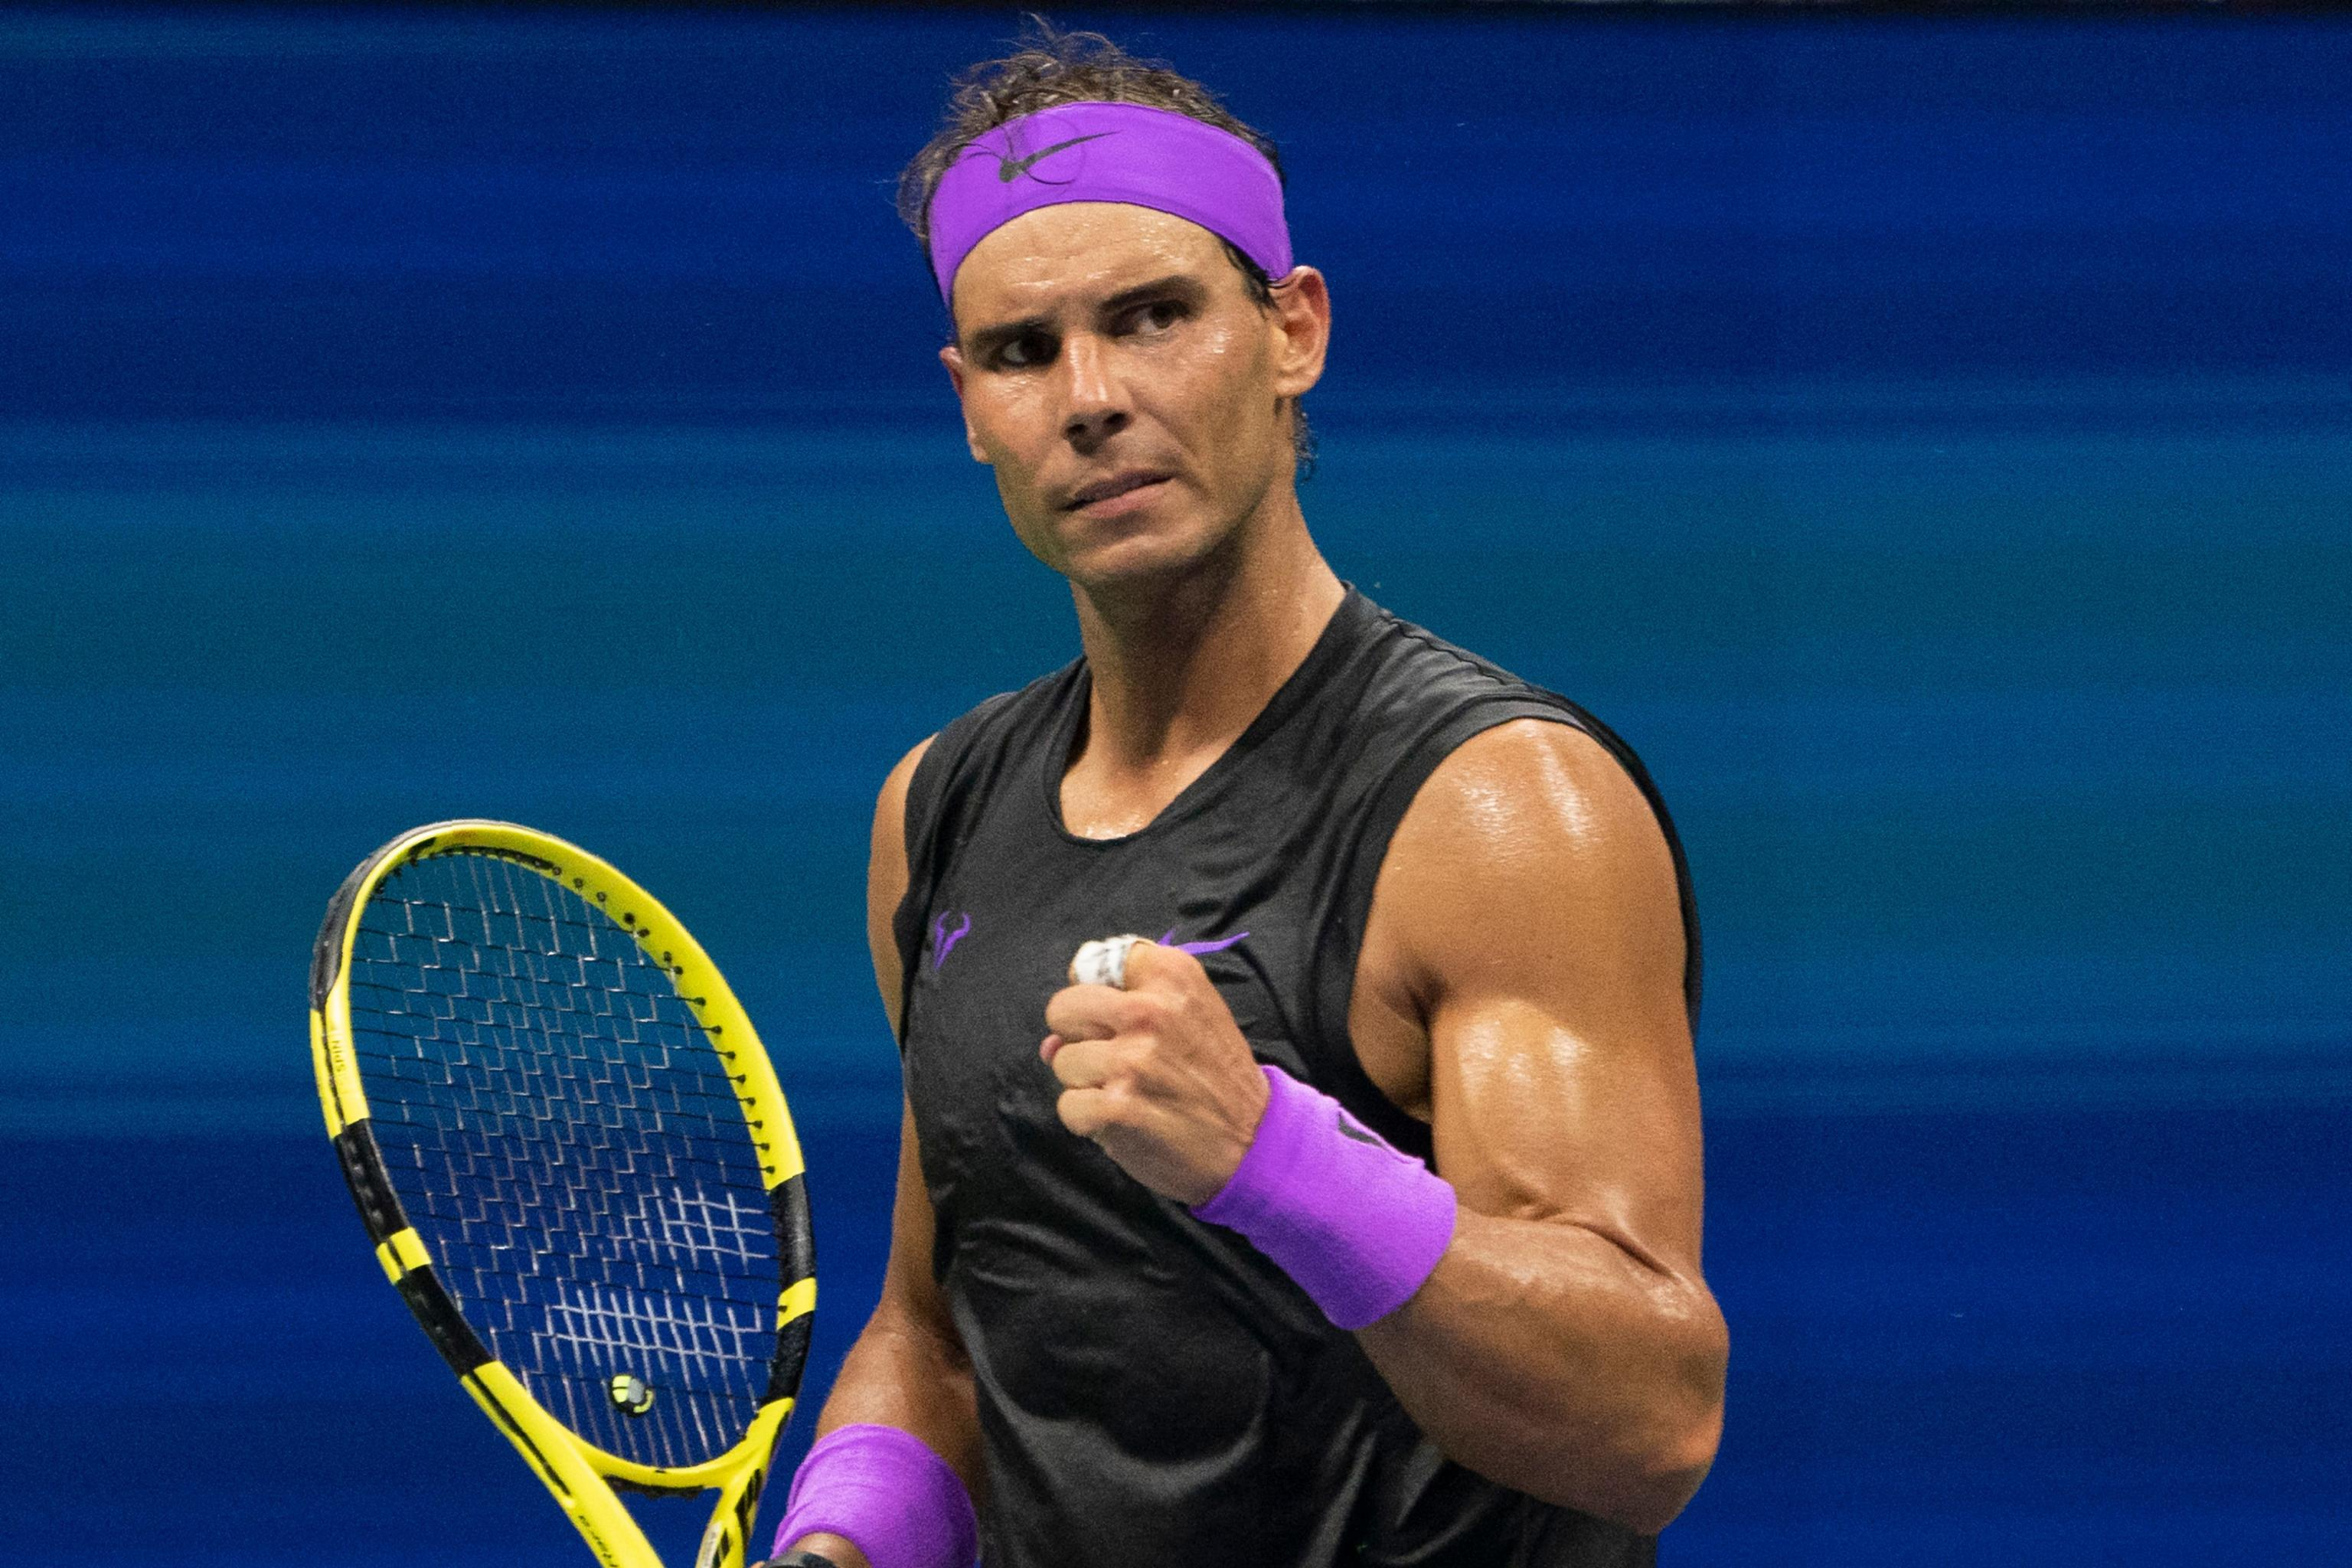 Rafael Nadal Defeats Diego Schwartzman To Advance To 2019 Us Open Semifinals Bleacher Report Latest News Videos And Highlights